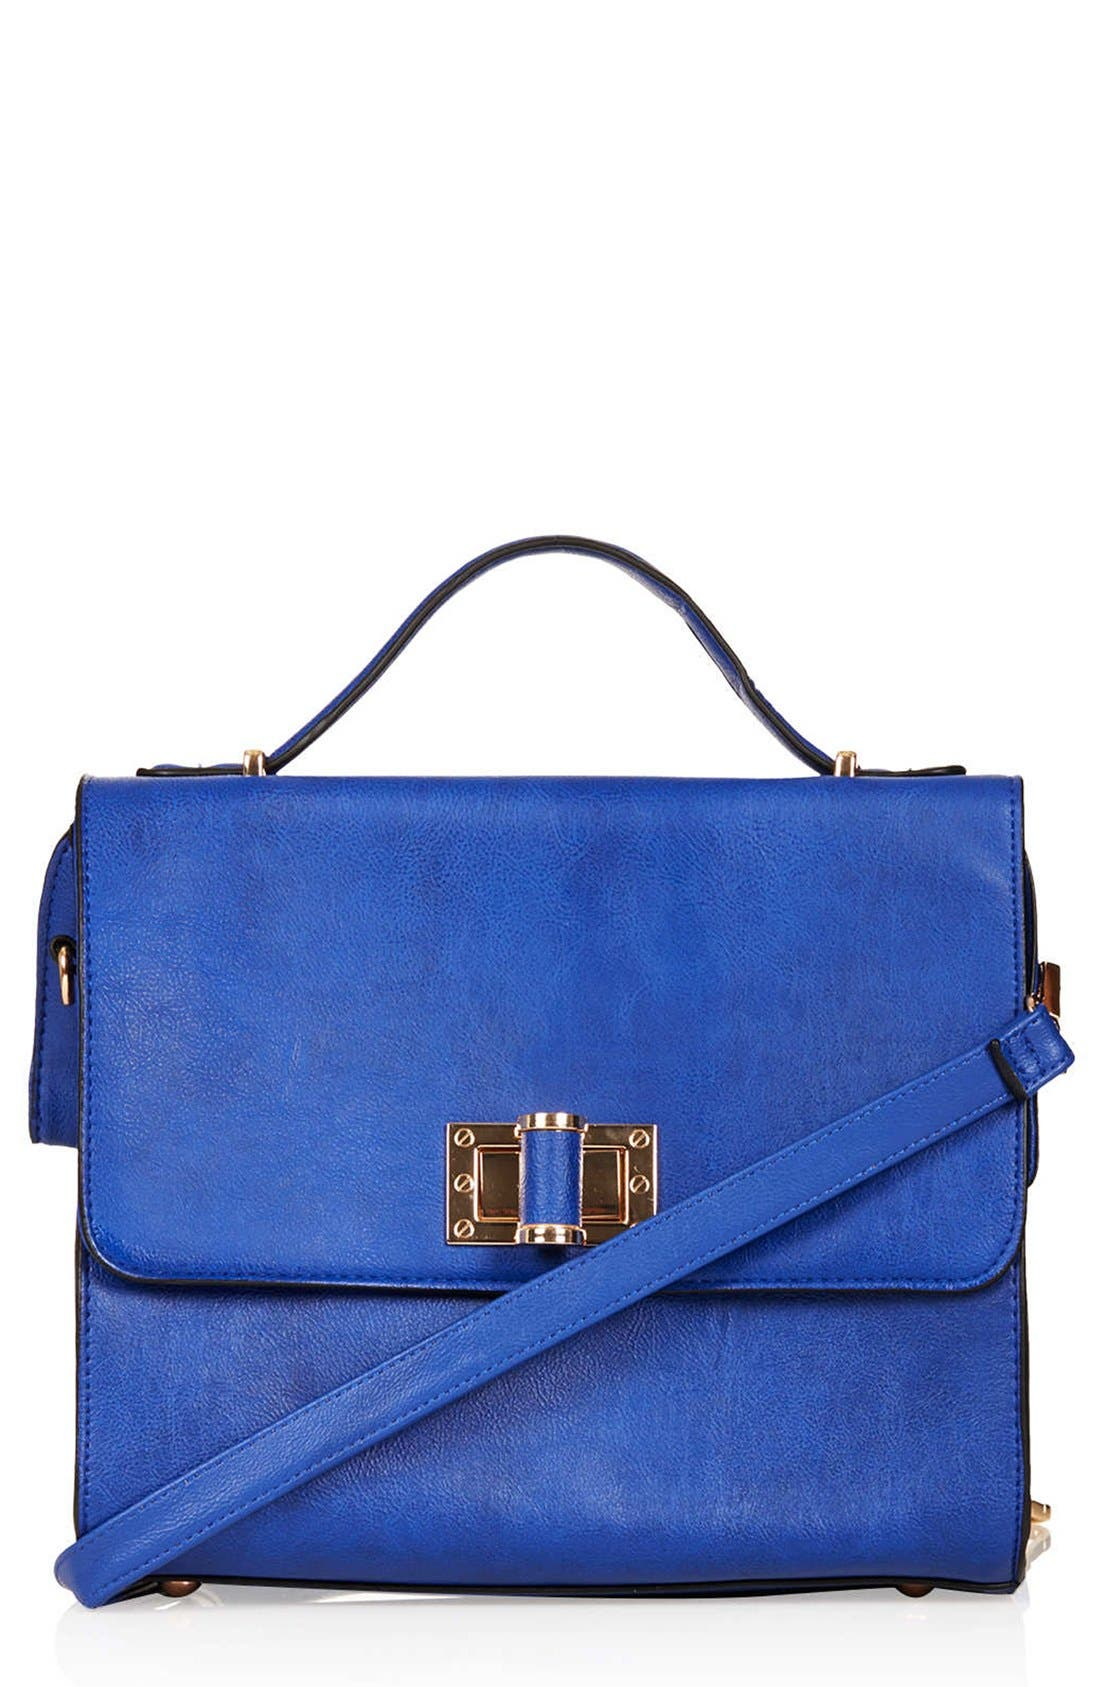 Alternate Image 1 Selected - Topshop 'Margot' Carryall Satchel